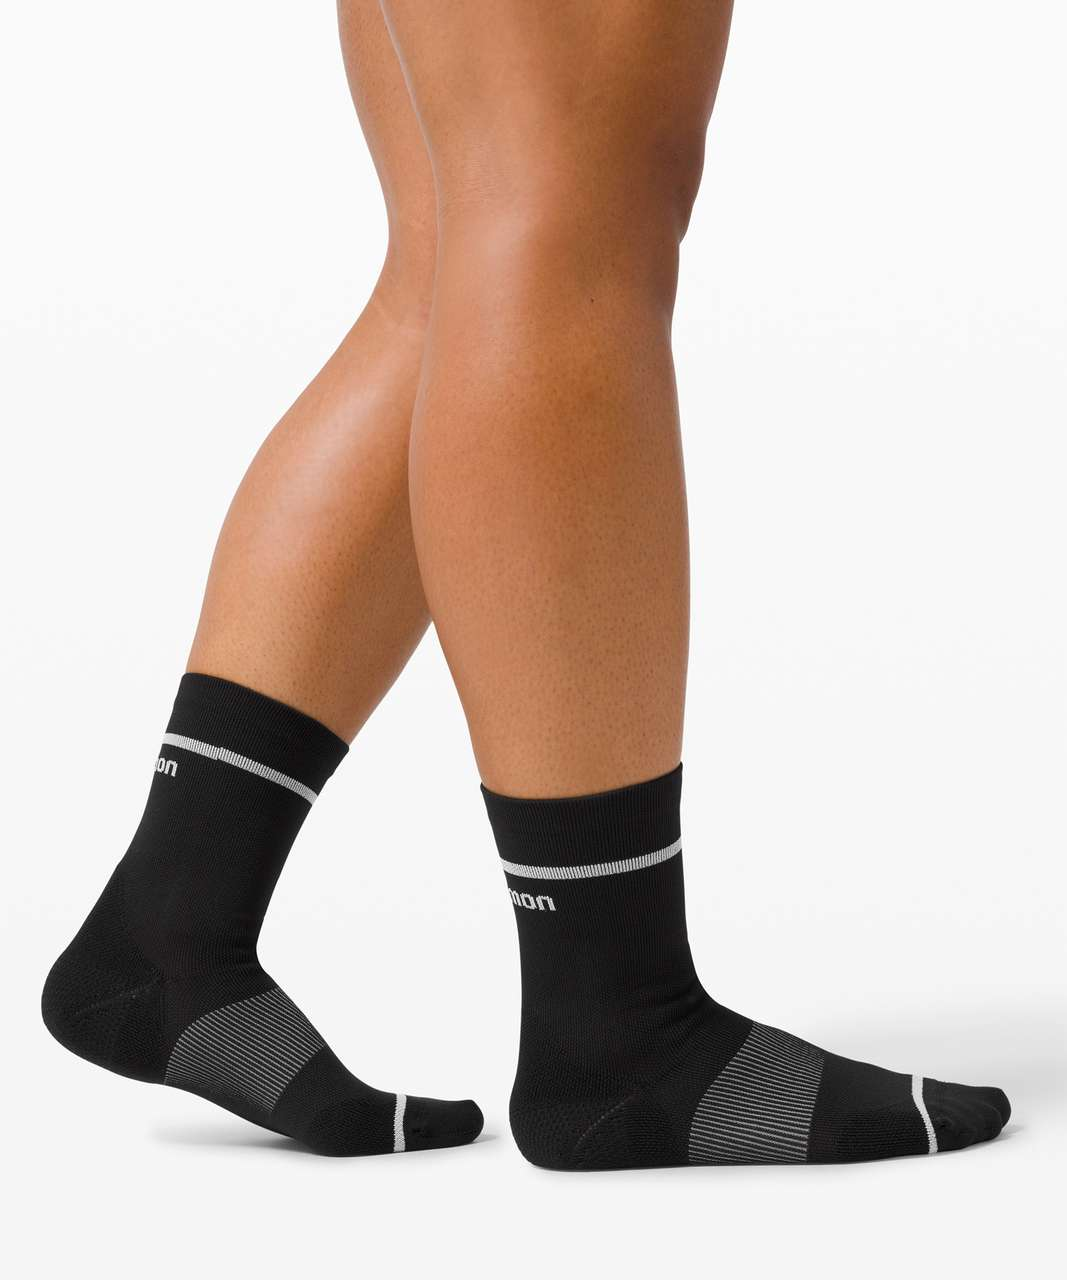 Lululemon Power Stride Crew Sock *2 Pack - White / Black